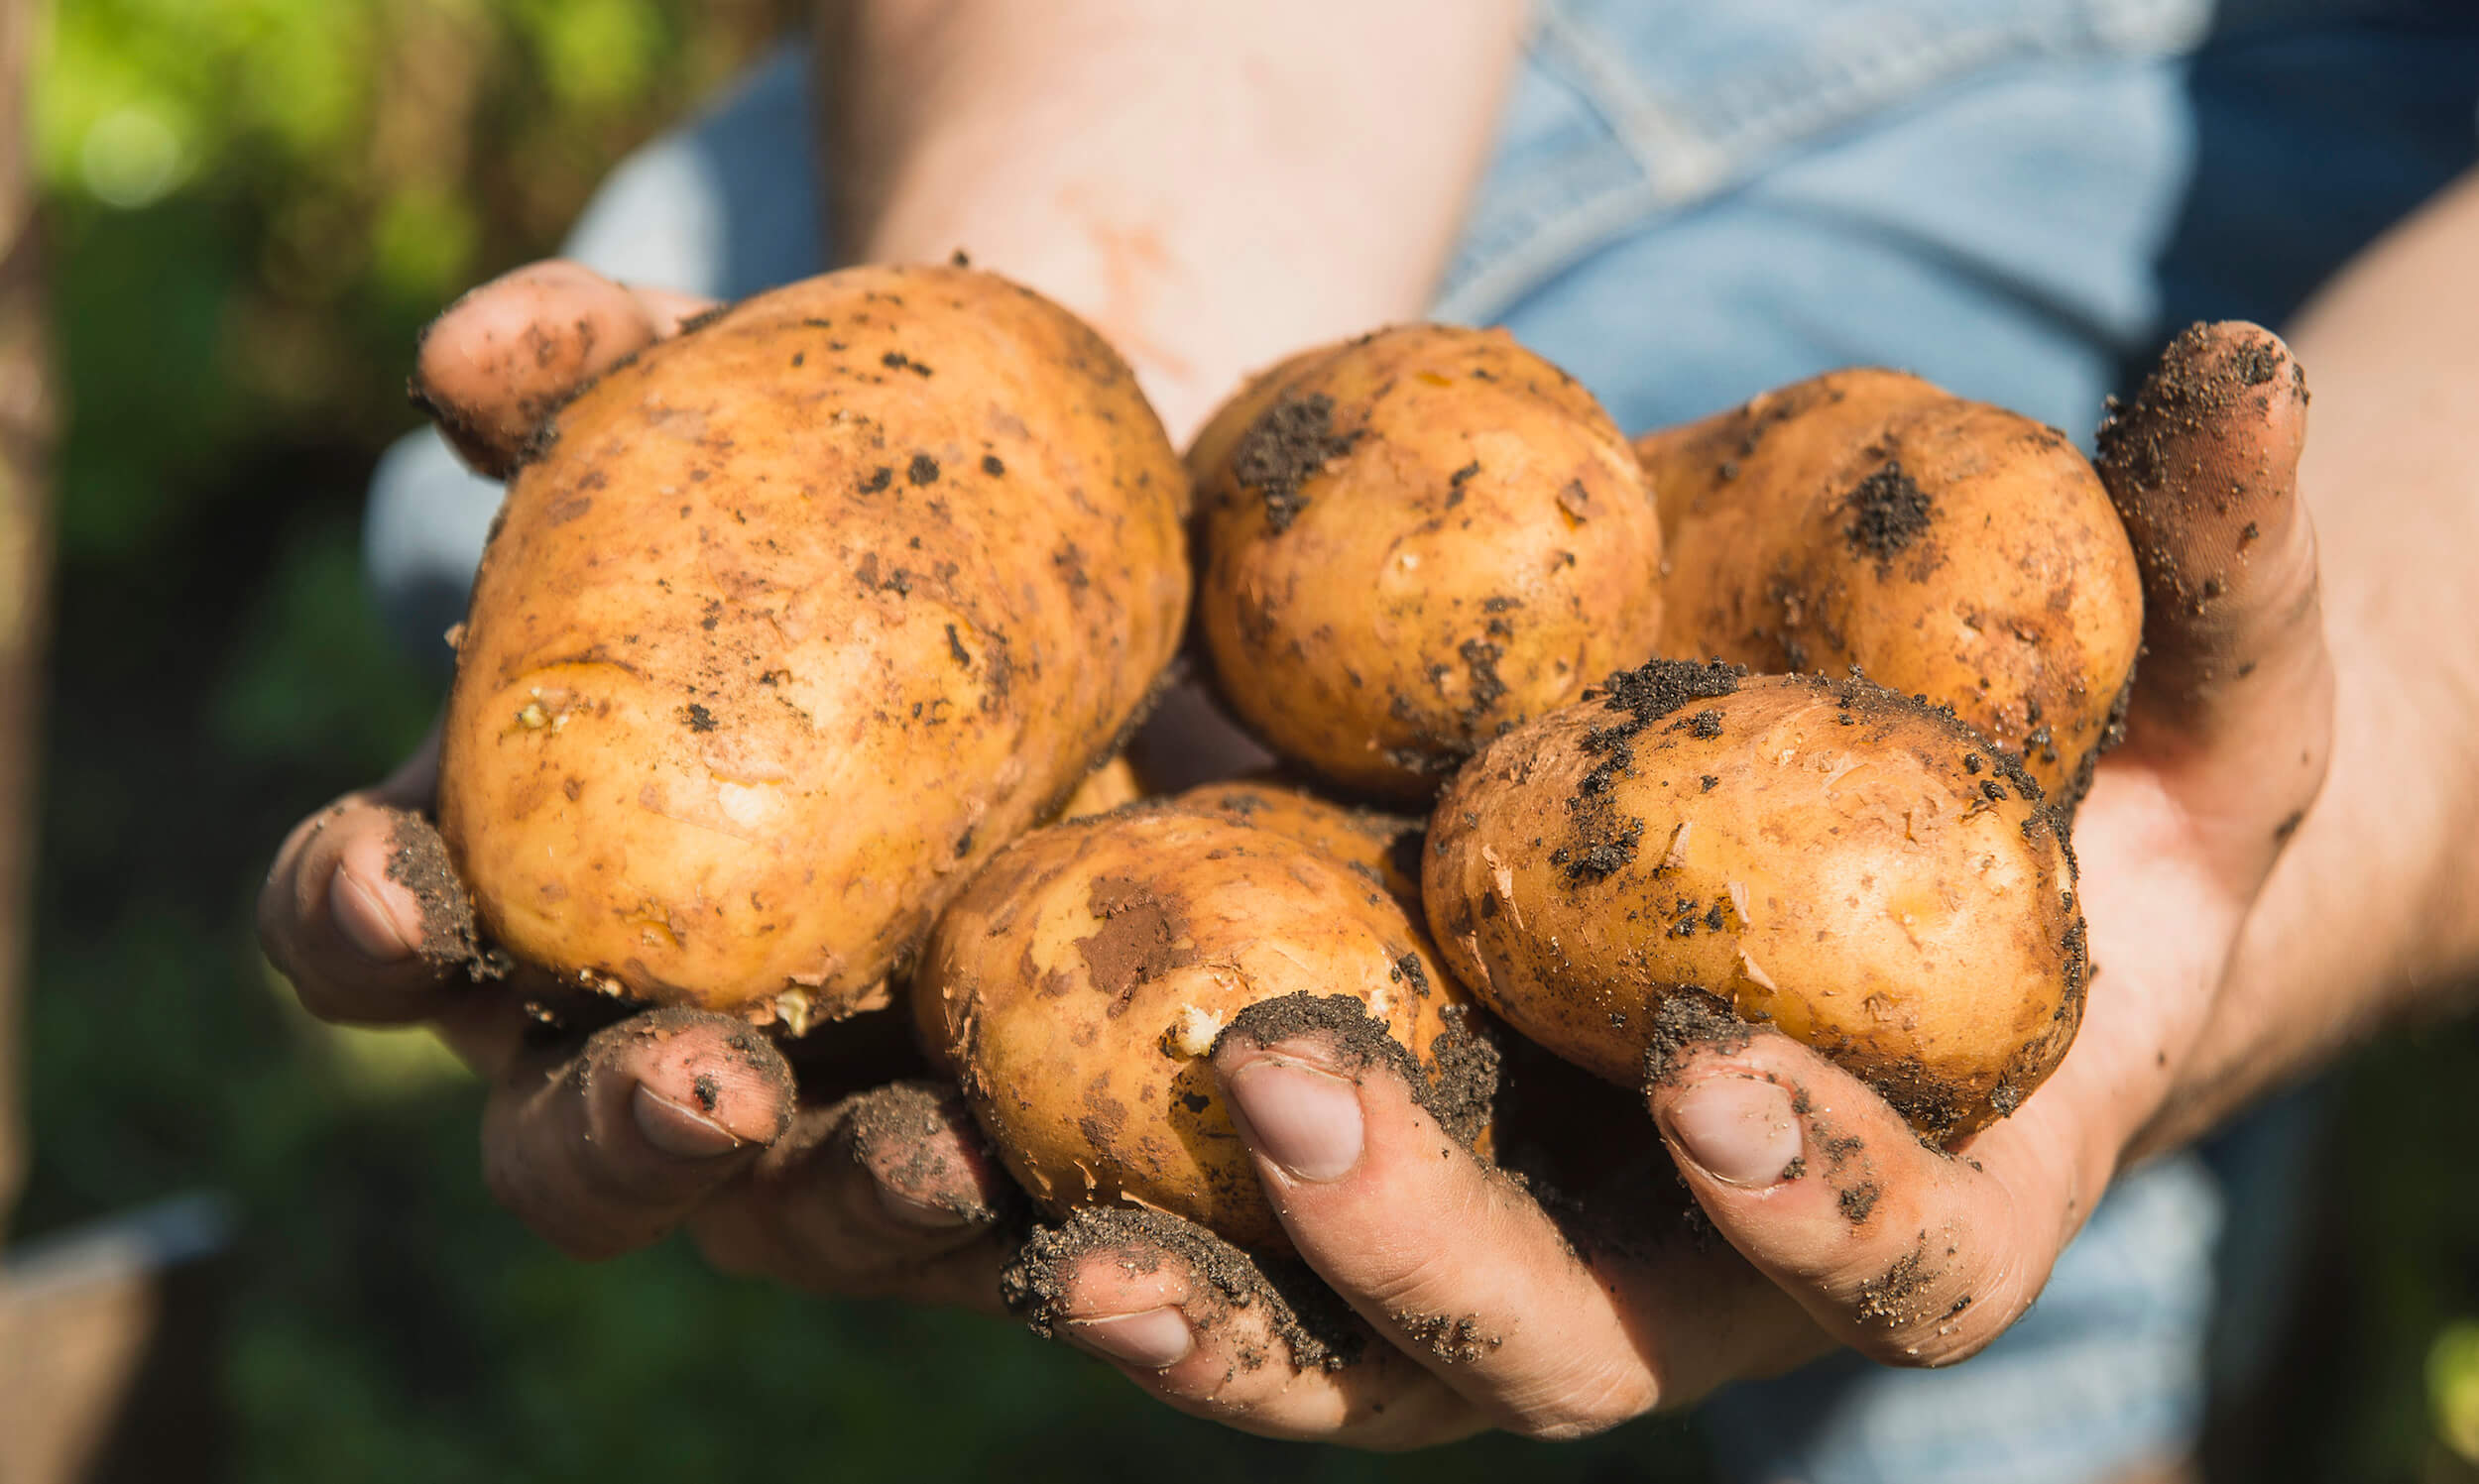 Gardener holding freshly dug potatoes